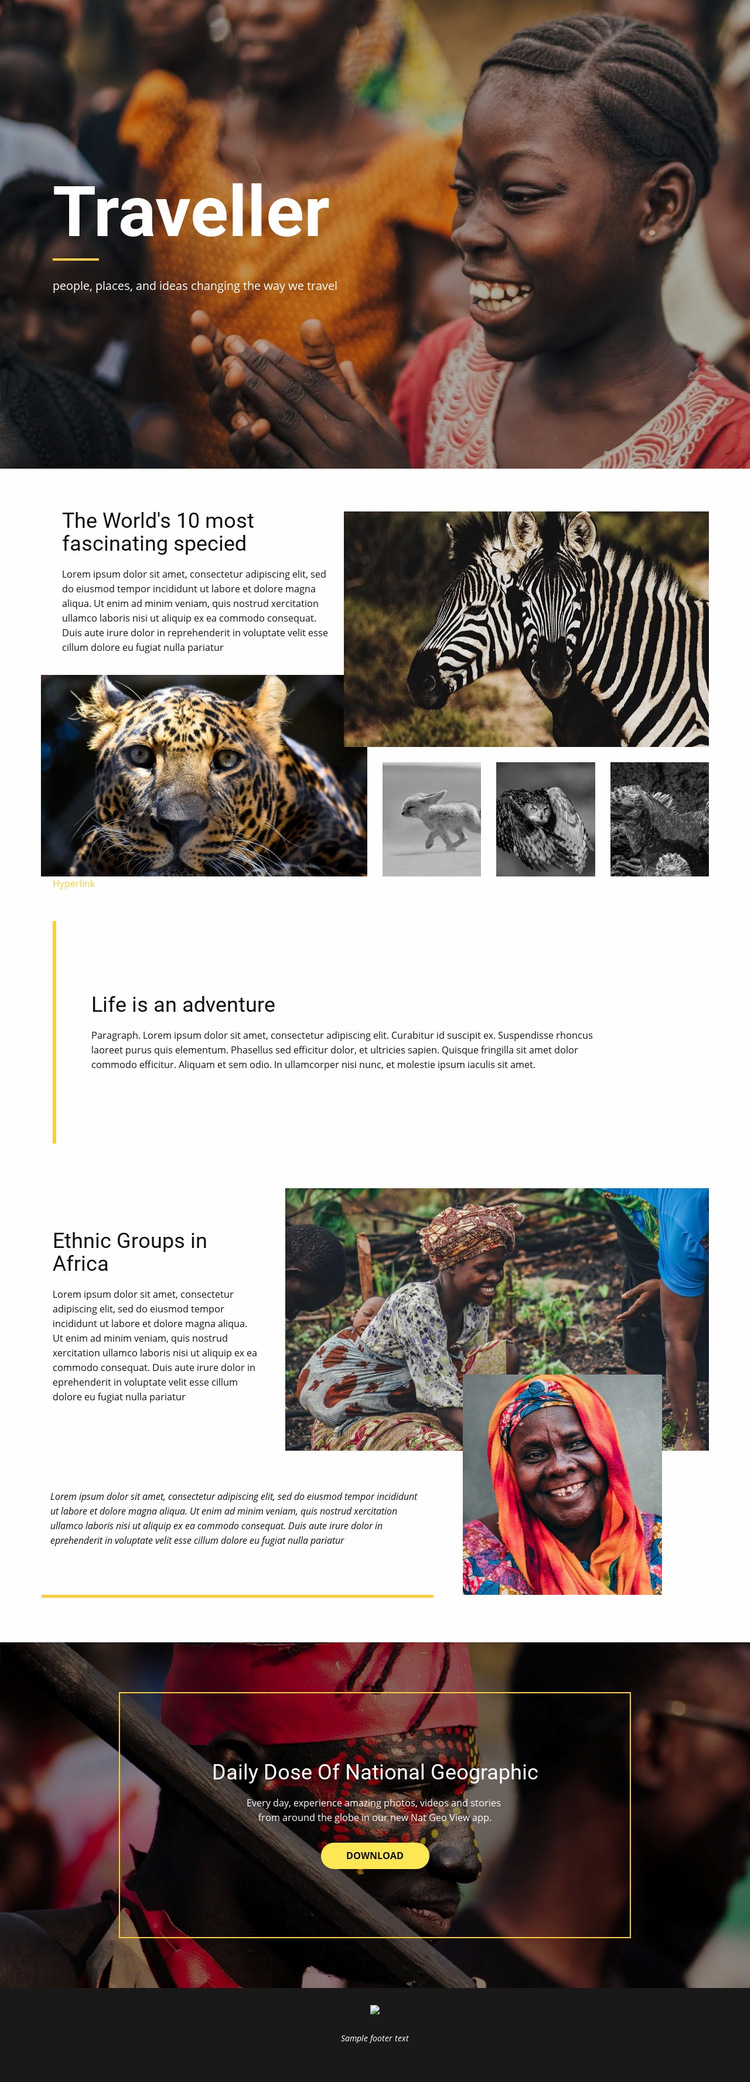 Life is an adventure Web Page Design